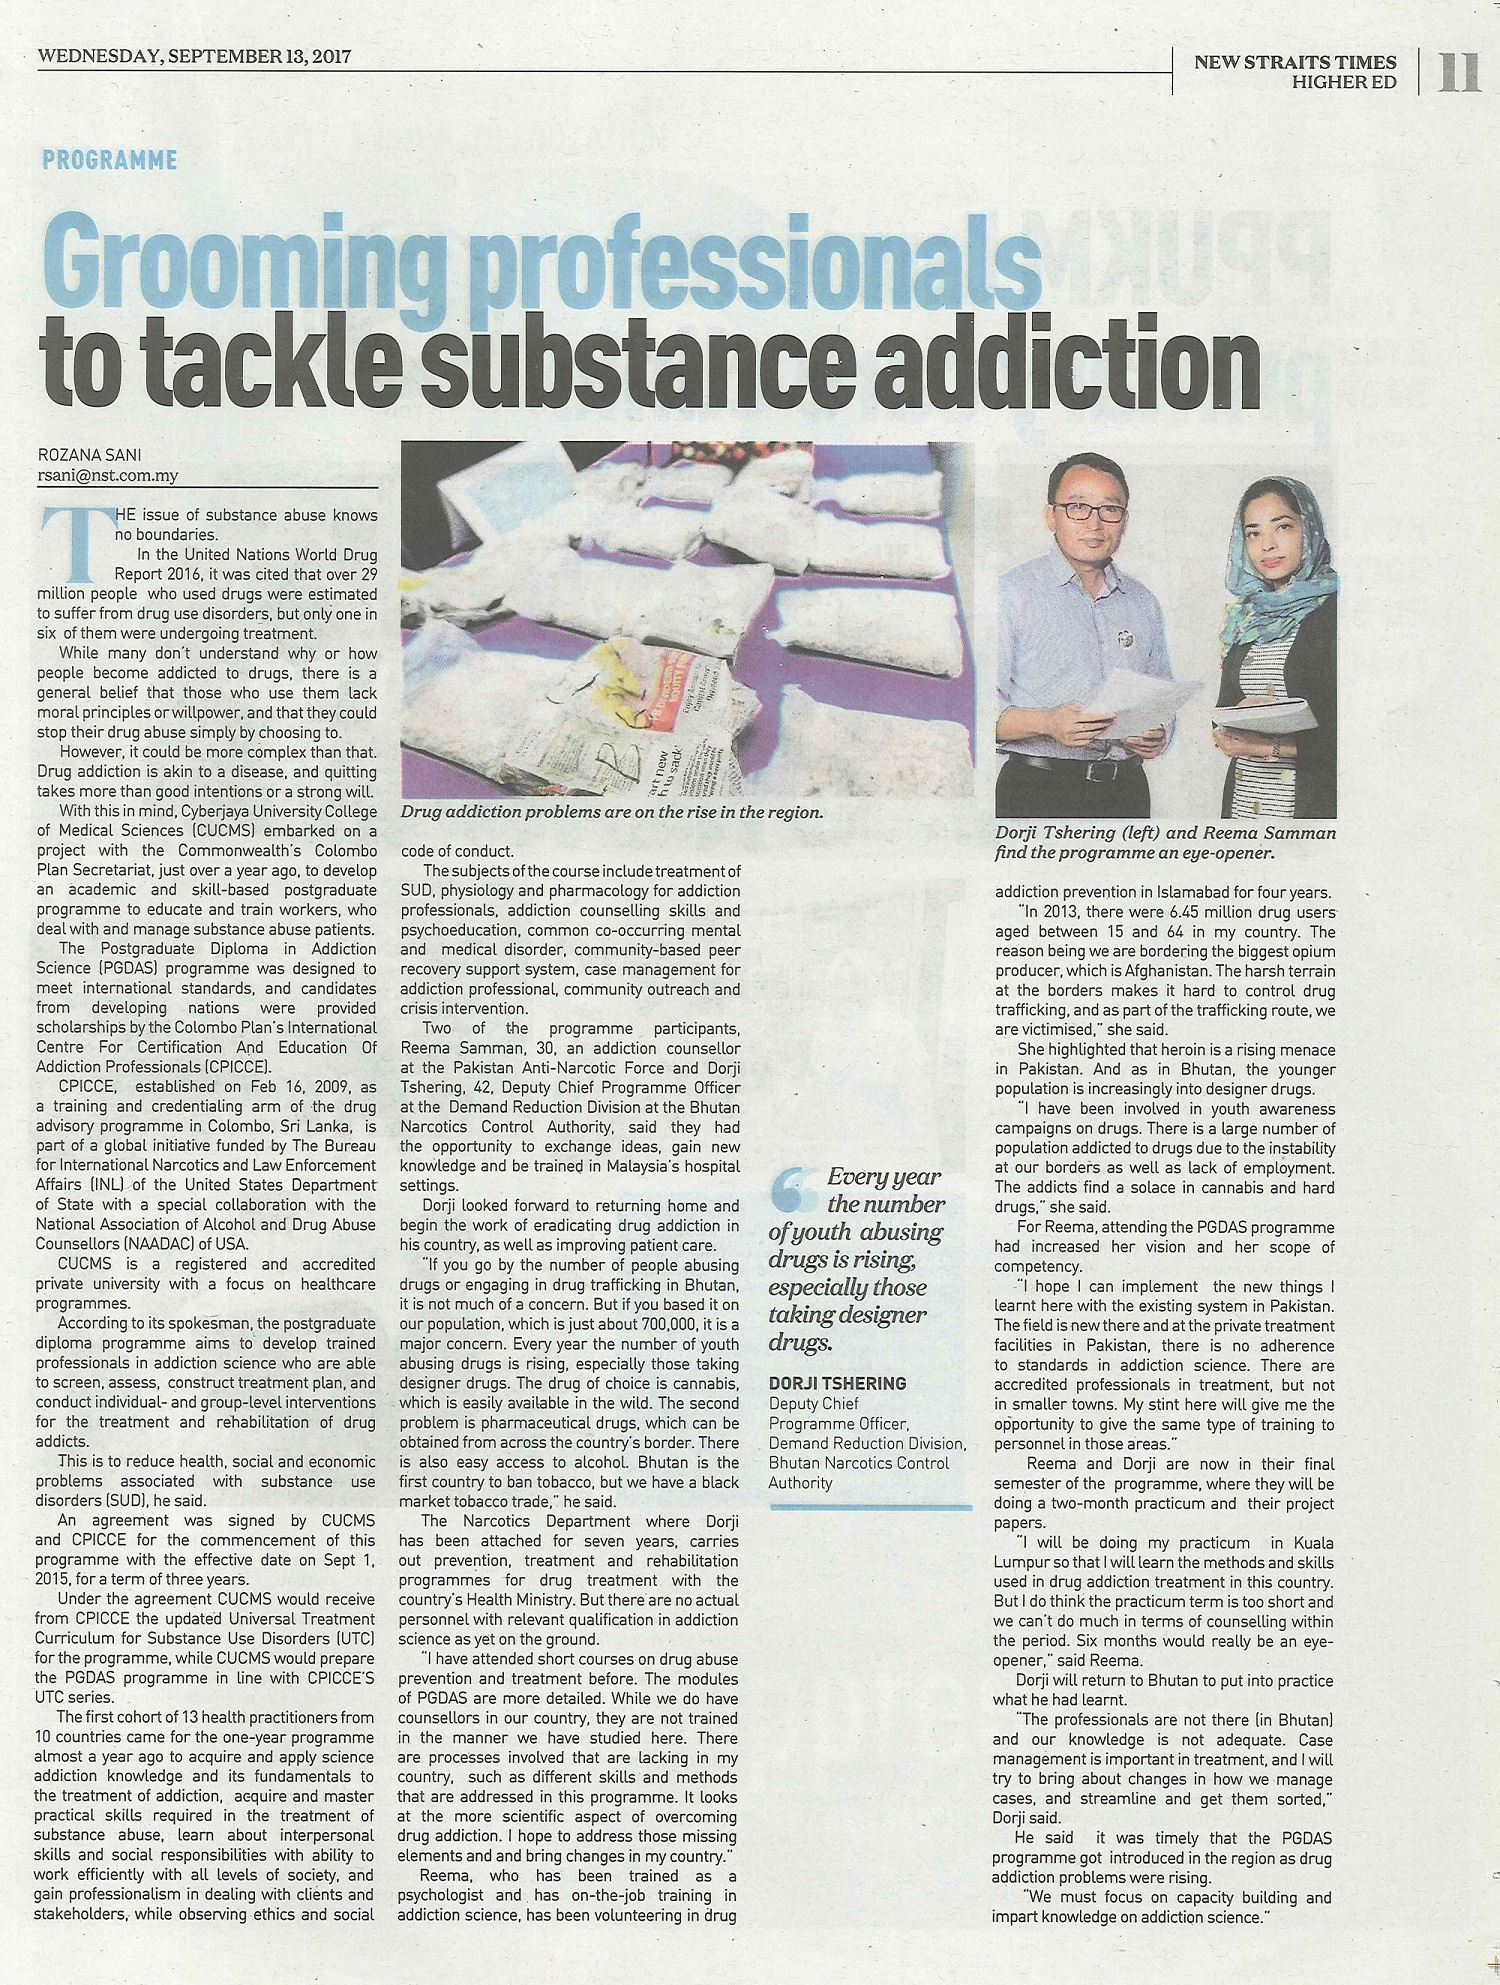 NST-Grooming-professionals-to-tackle-substance-addiction-13-Sep-2017